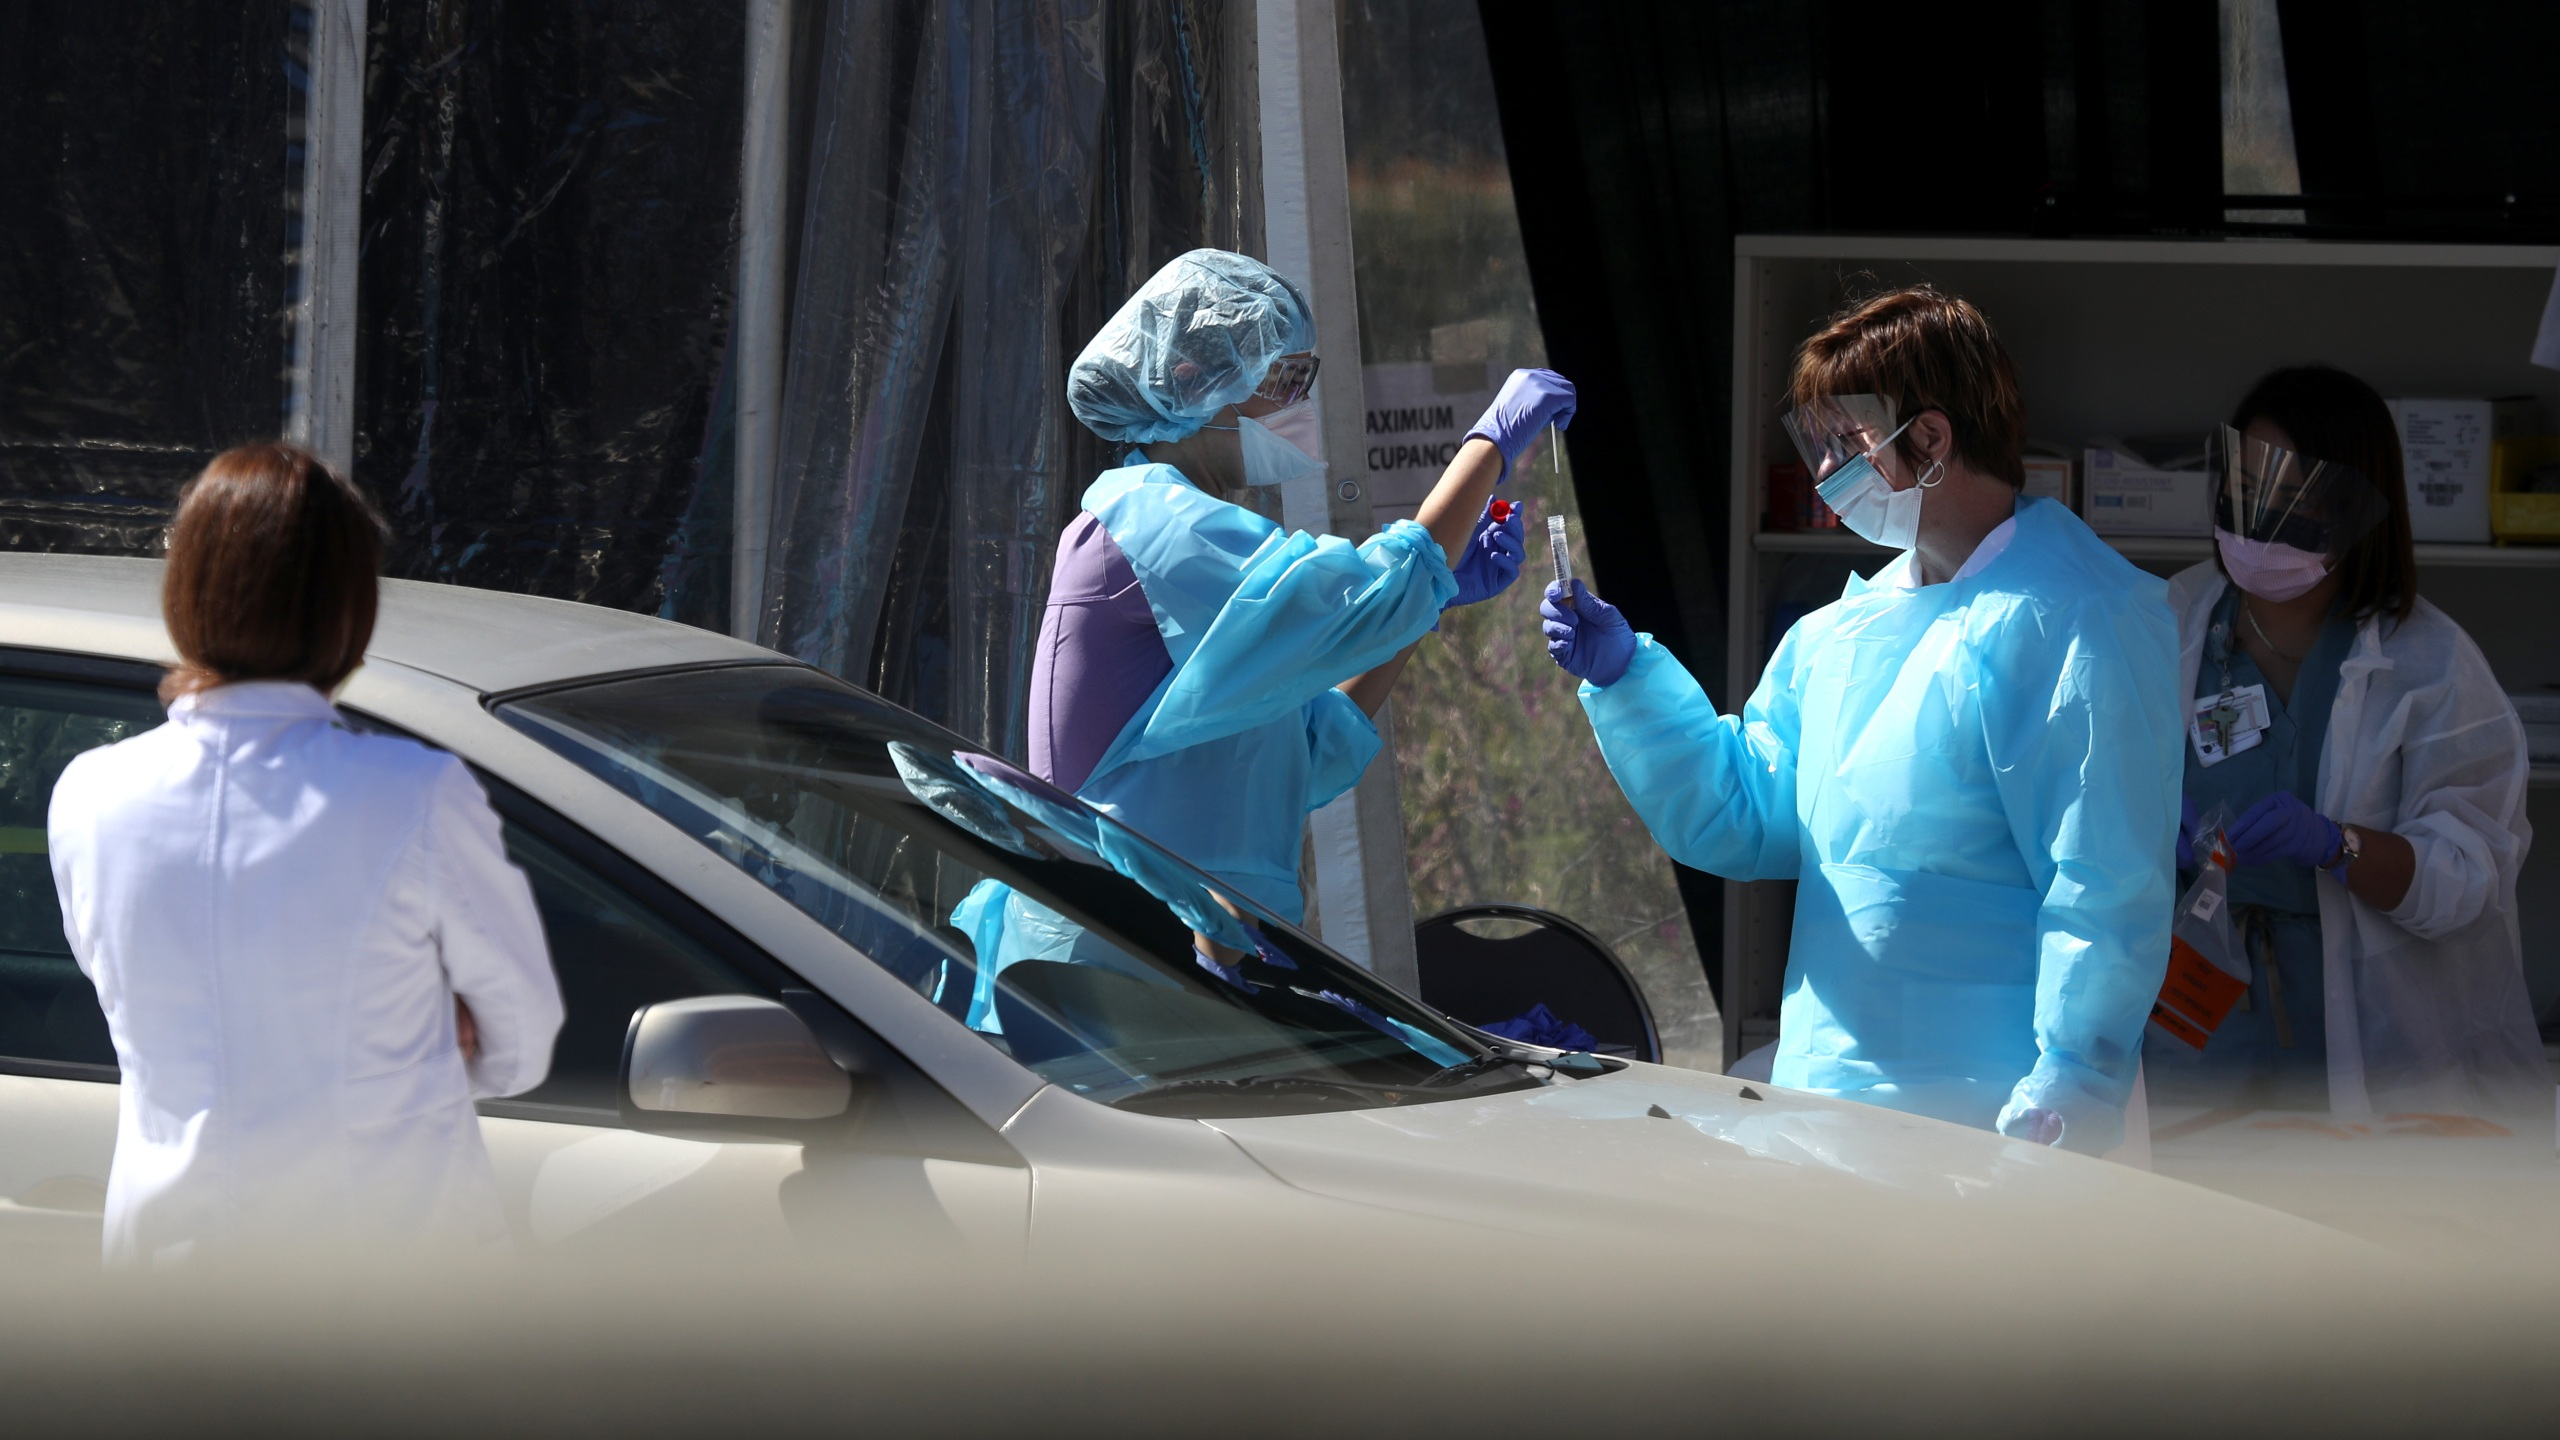 Medical personnel take a sample from a person at a drive-thru coronavirus testing station at a Kaiser Permanente facility on March 12, 2020 in San Francisco. (Justin Sullivan/Getty Images)